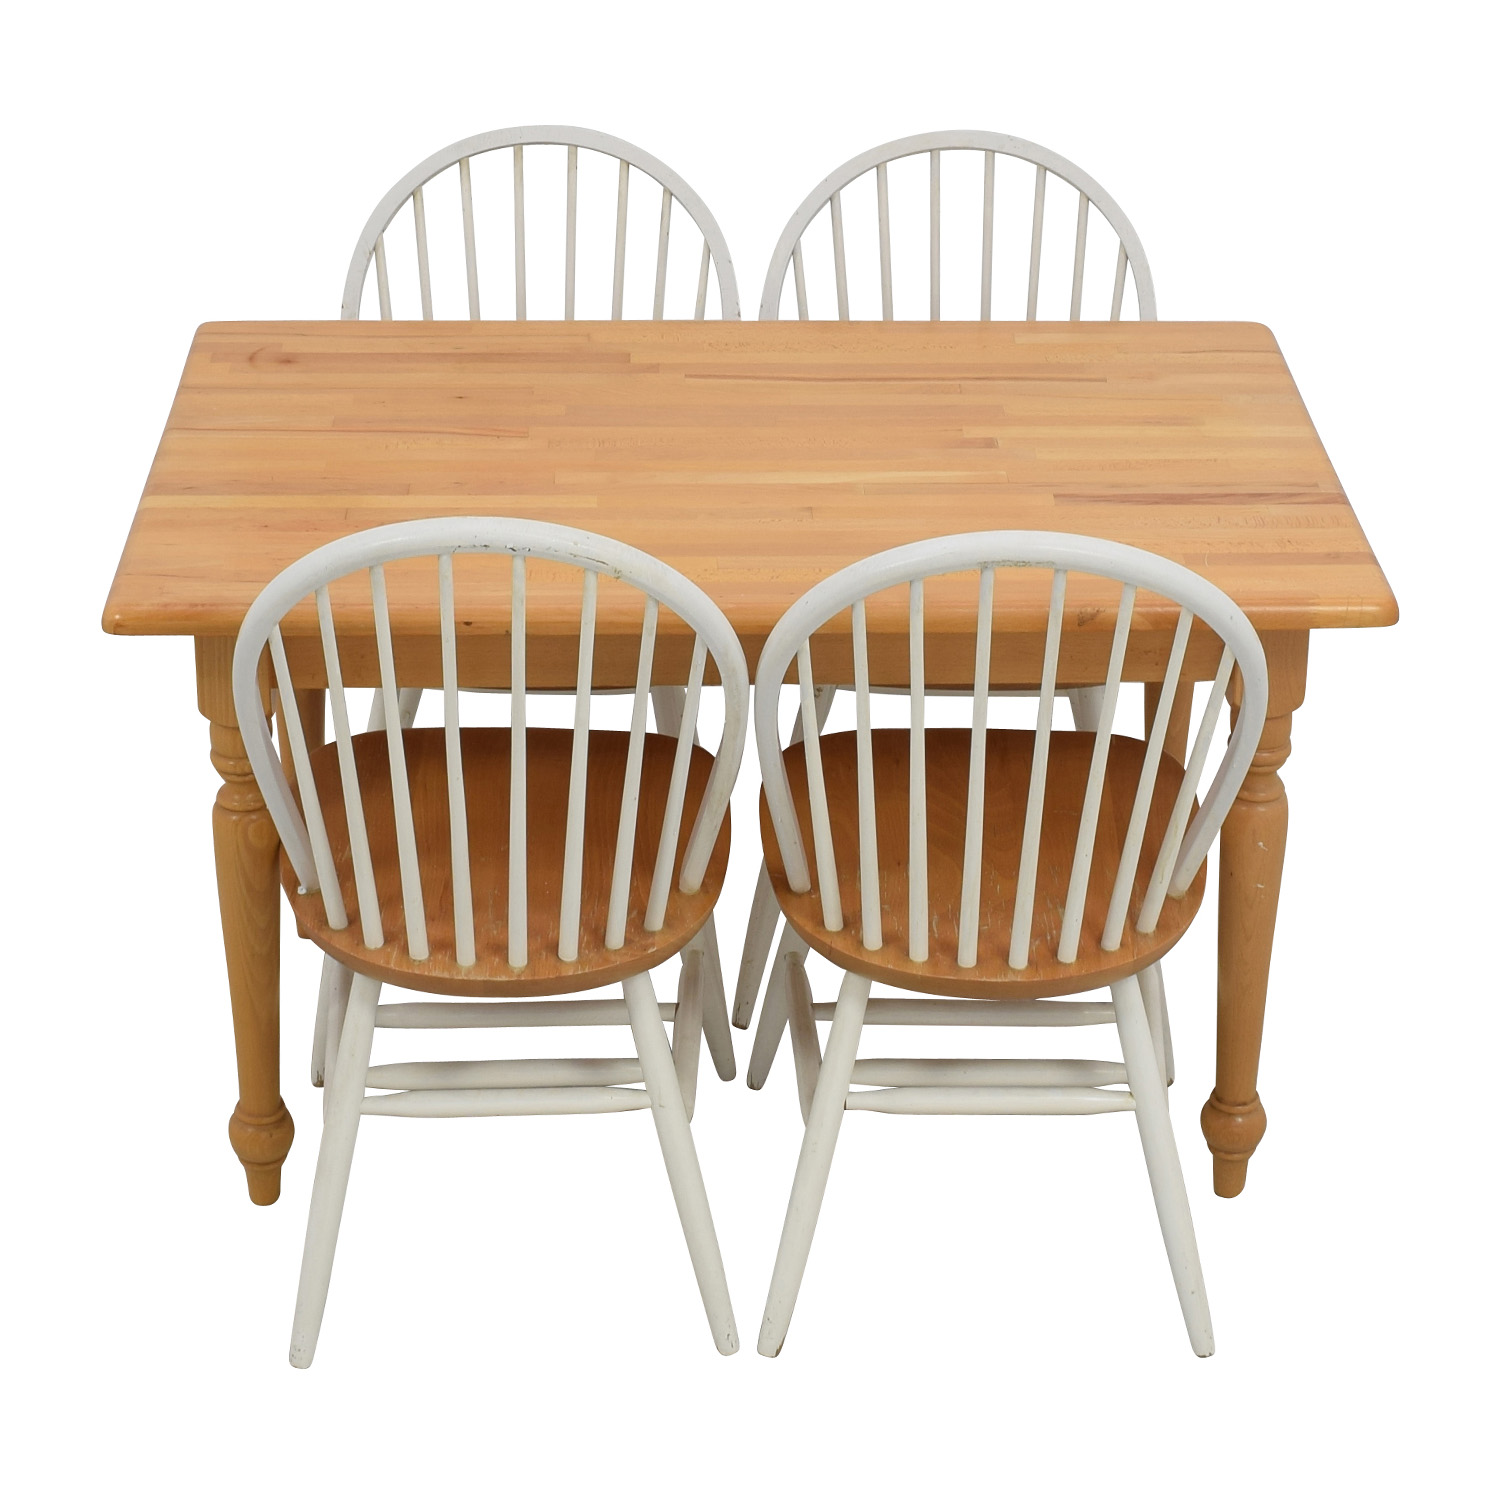 used kitchen chairs air bag chair dining sets for sale